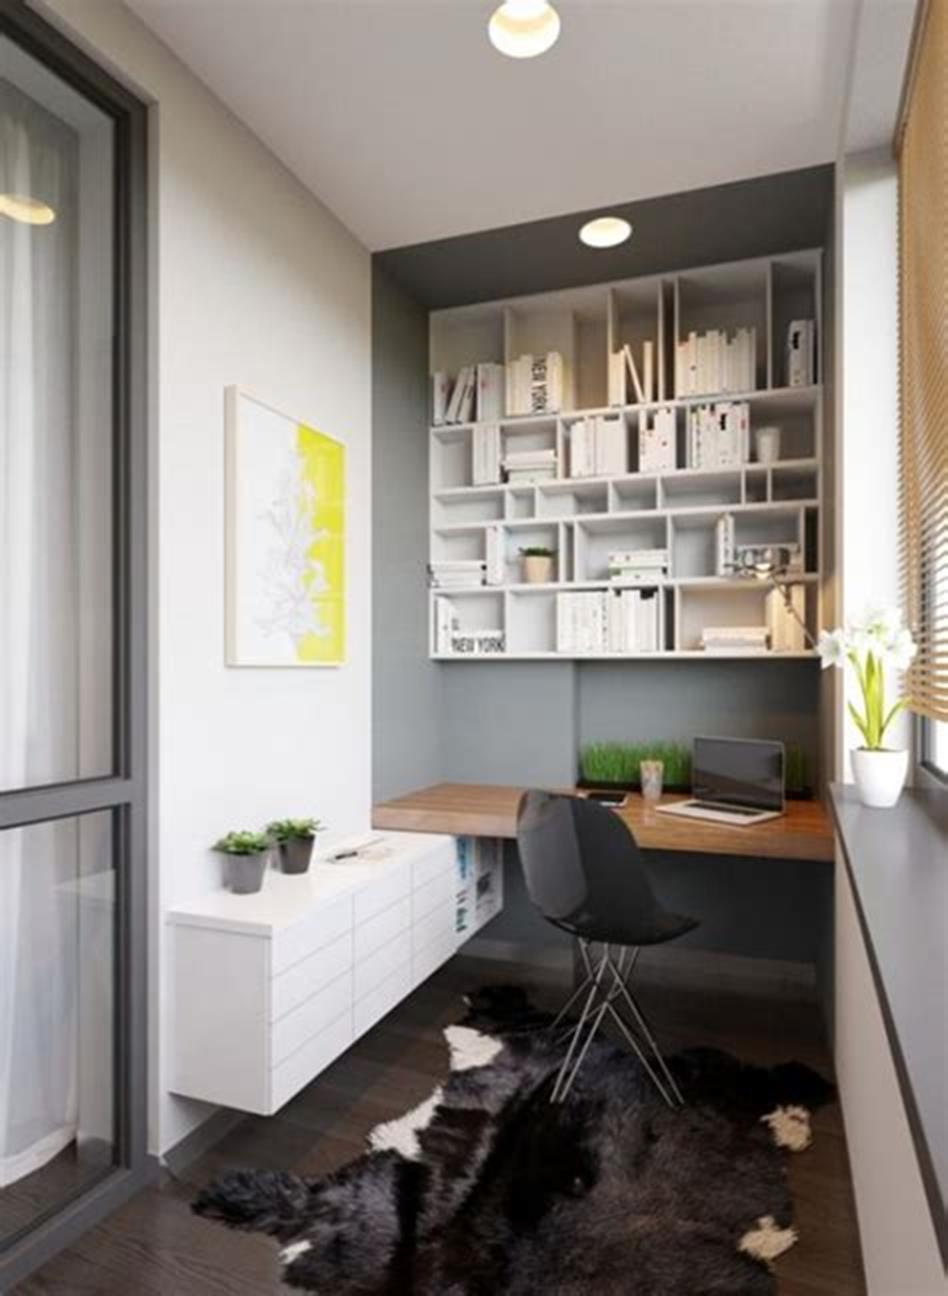 50 Best Small Space Office Decorating Ideas On a Budget 2019 45